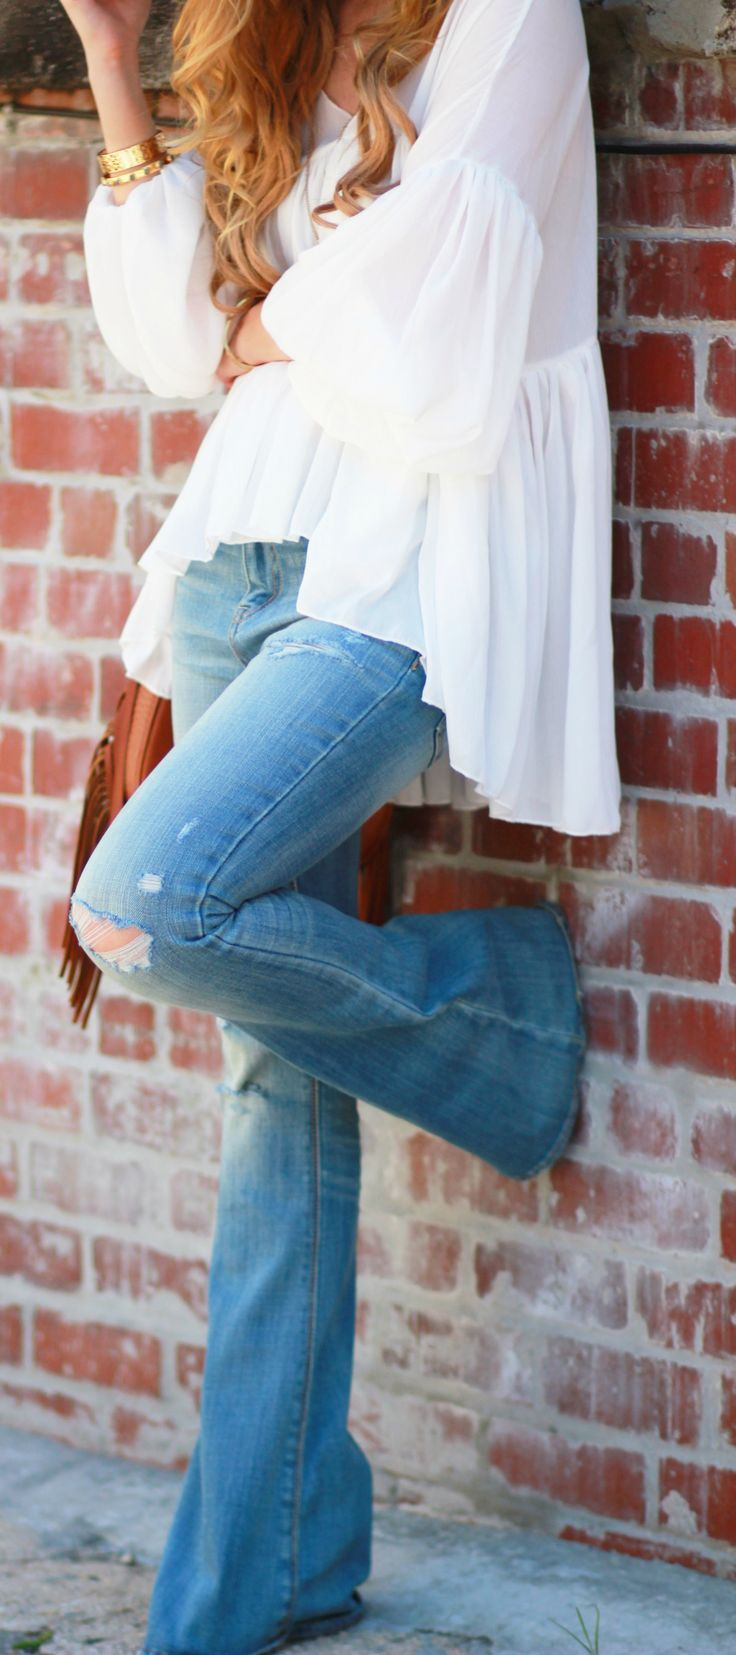 Stitch Fix Spring Summer 2017 inspiration!  Love this adorable boho vibe of this outfit with white peasant top and flared jean.  Such a great look!!  Try Stitch Fix today to receive styles just like these.  Simply click the picture, fill out your style profile and start customizing your wardrobe today!! Who doesn't want hand picked styles delivered right to their door?! #StitchFix #sponsored